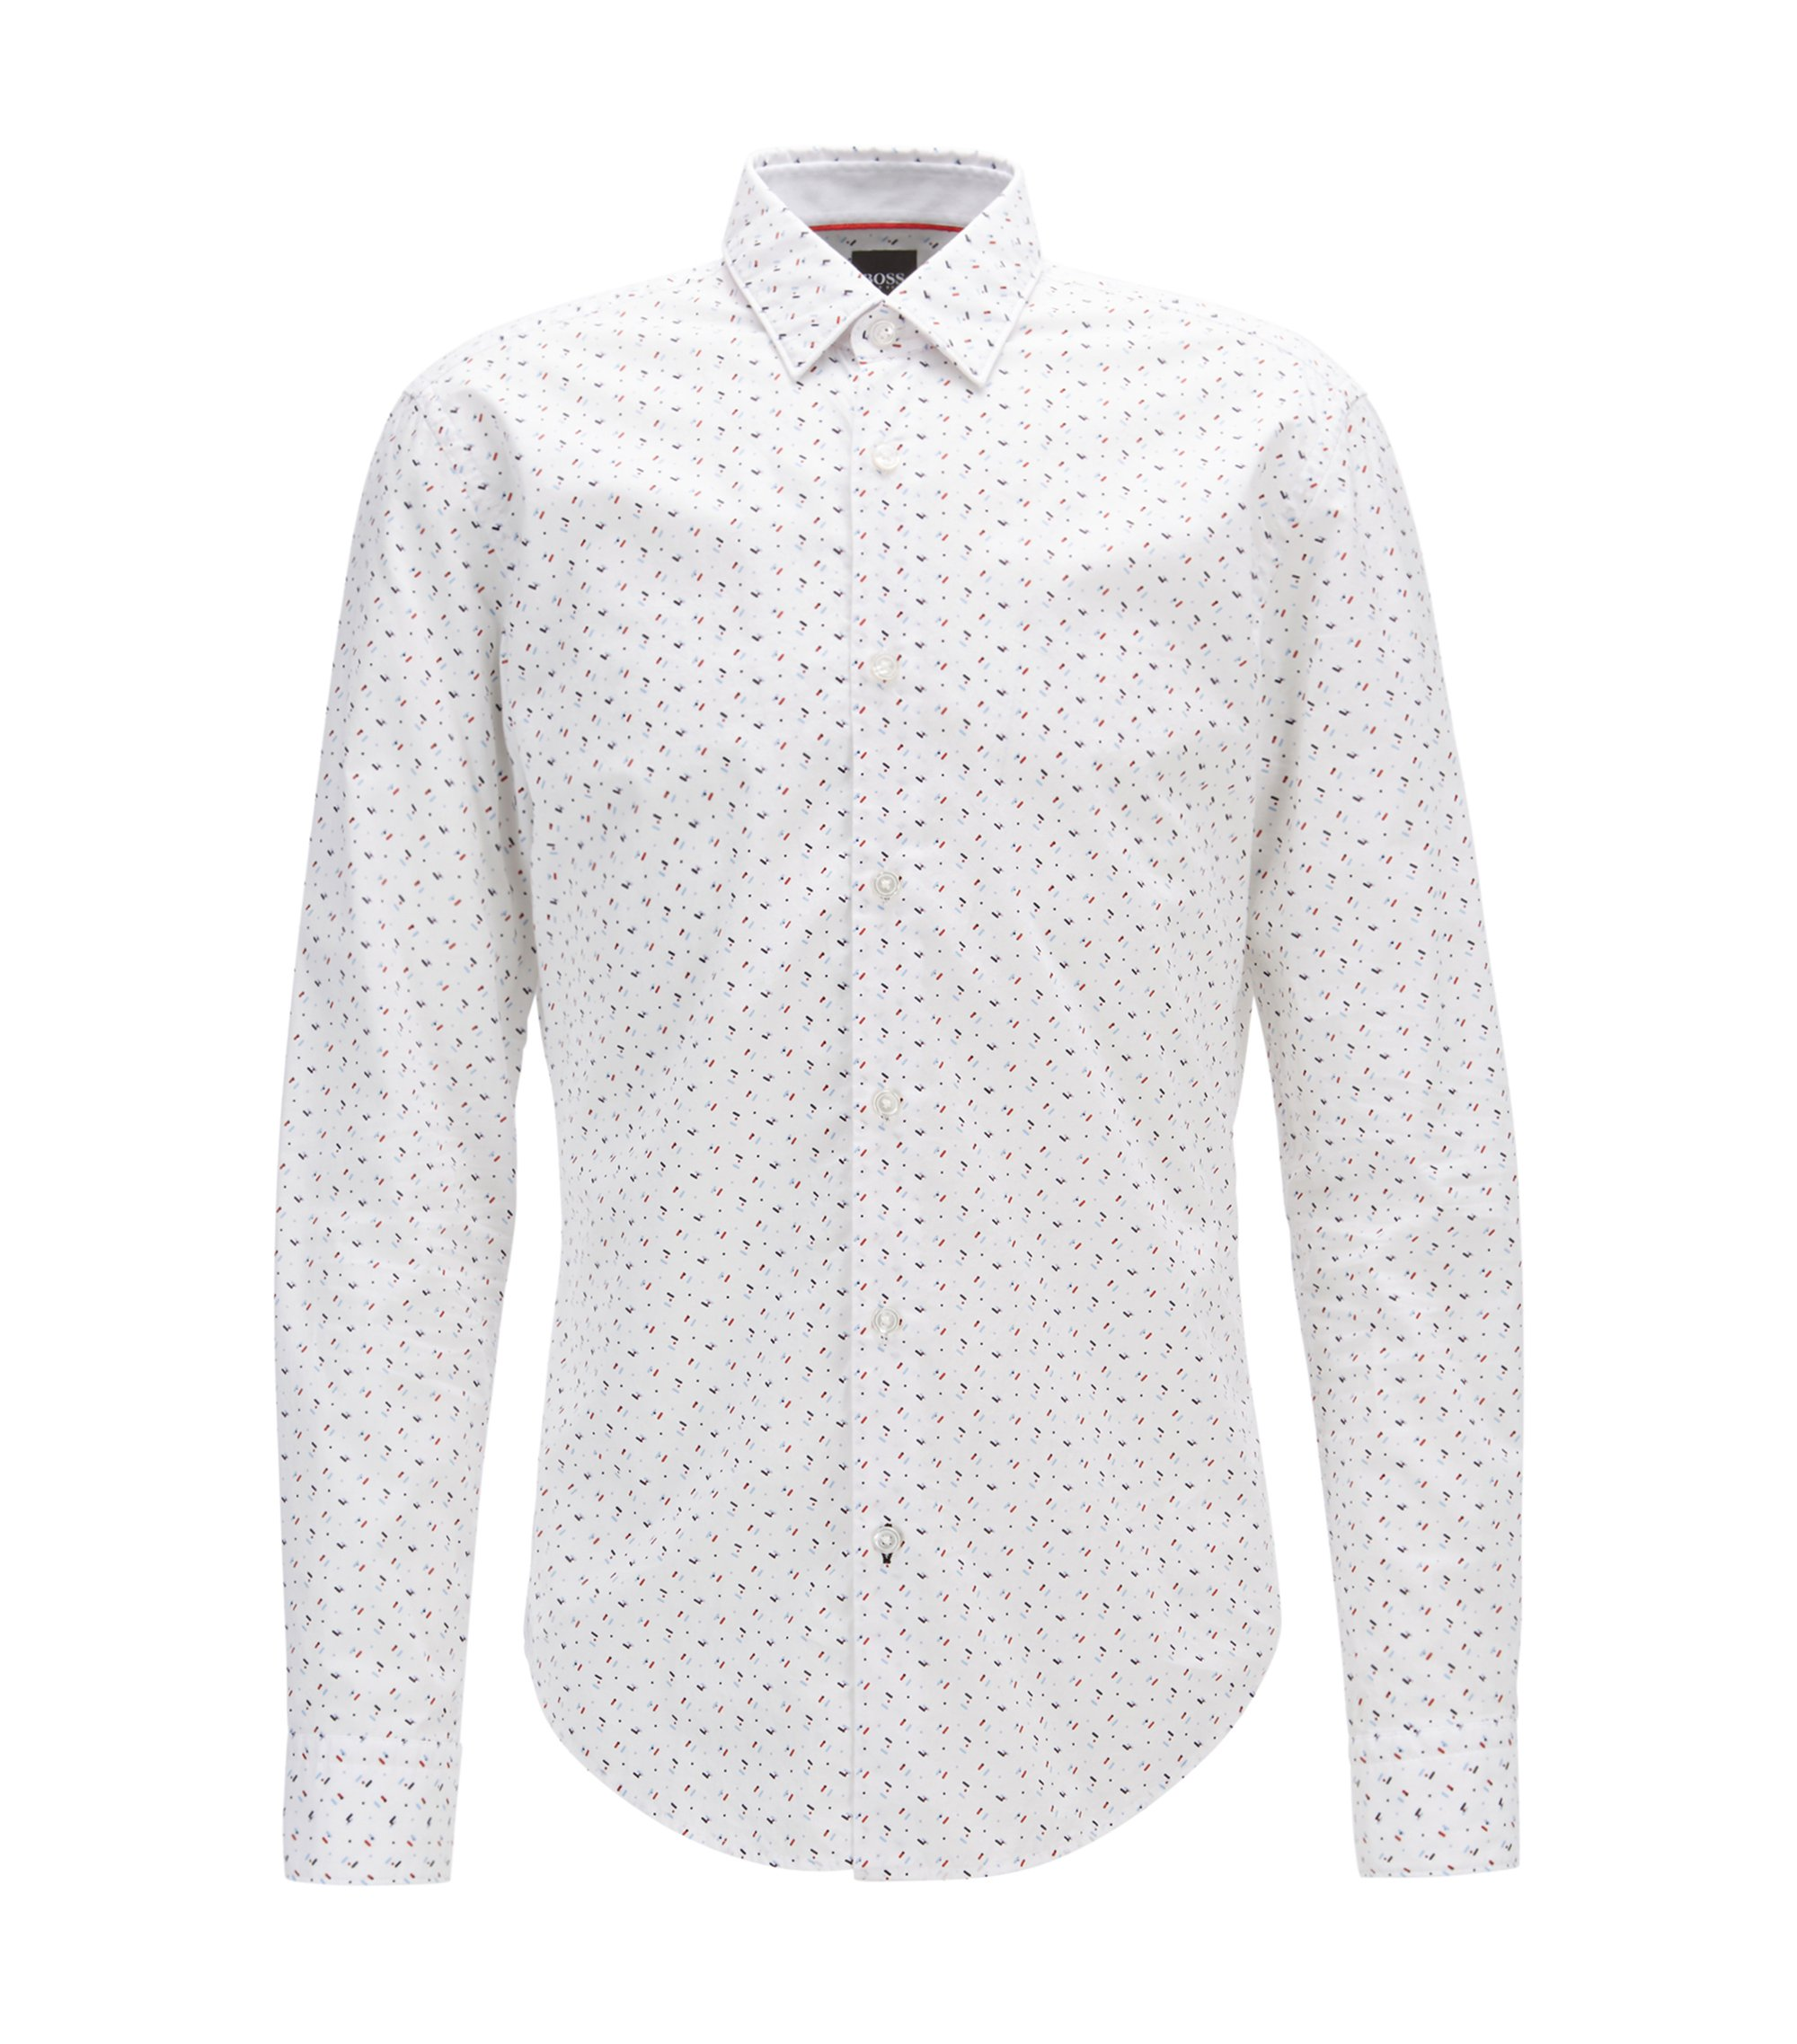 Printed slim-fit shirt in washed cotton poplin, White